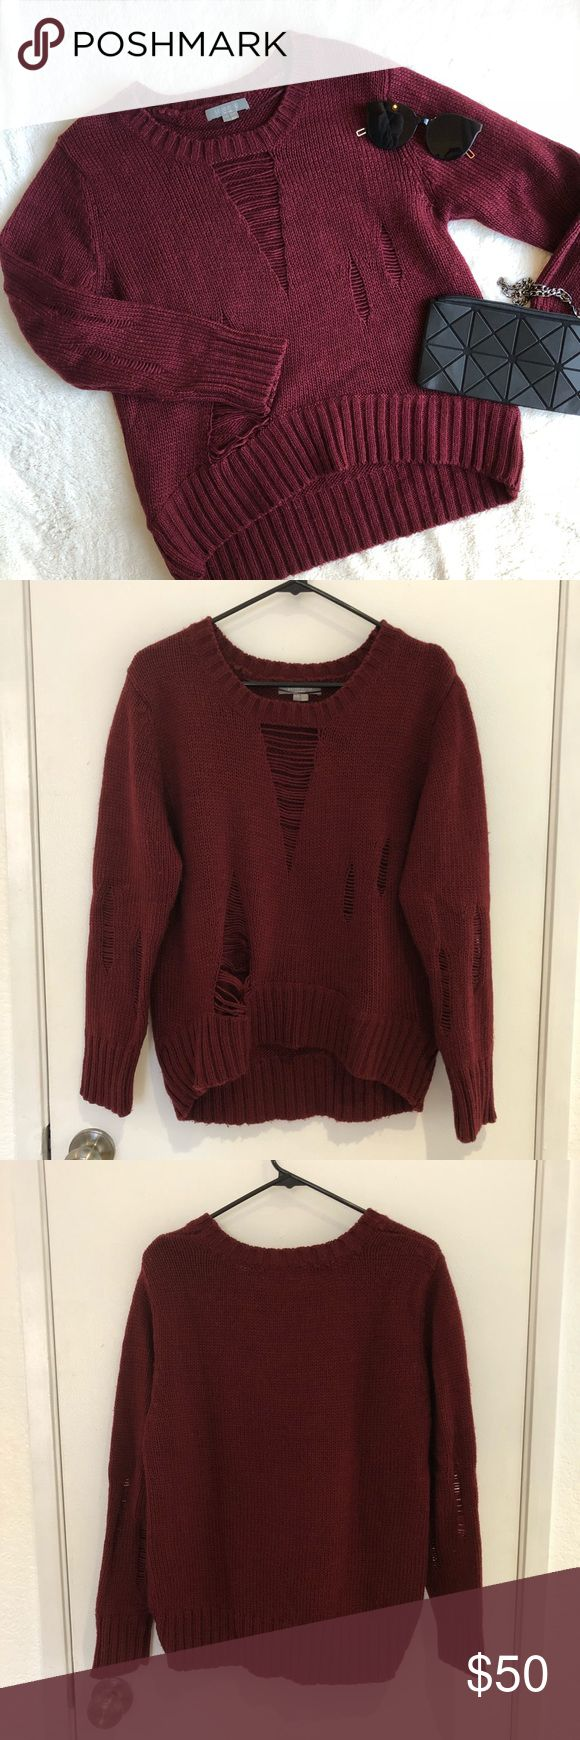 """Burgundy Sweater Knot burgundy sweater in good condition. Bought from Nast Gal. Brand is Solemio. Slightly oversized fit. Length is 22"""" in the front and 25"""" in the back. Sleeve is 23"""" from shoulder seam. Chest is 19"""" across. Distressed details on front. Nasty Gal Sweaters Crew & Scoop Necks"""